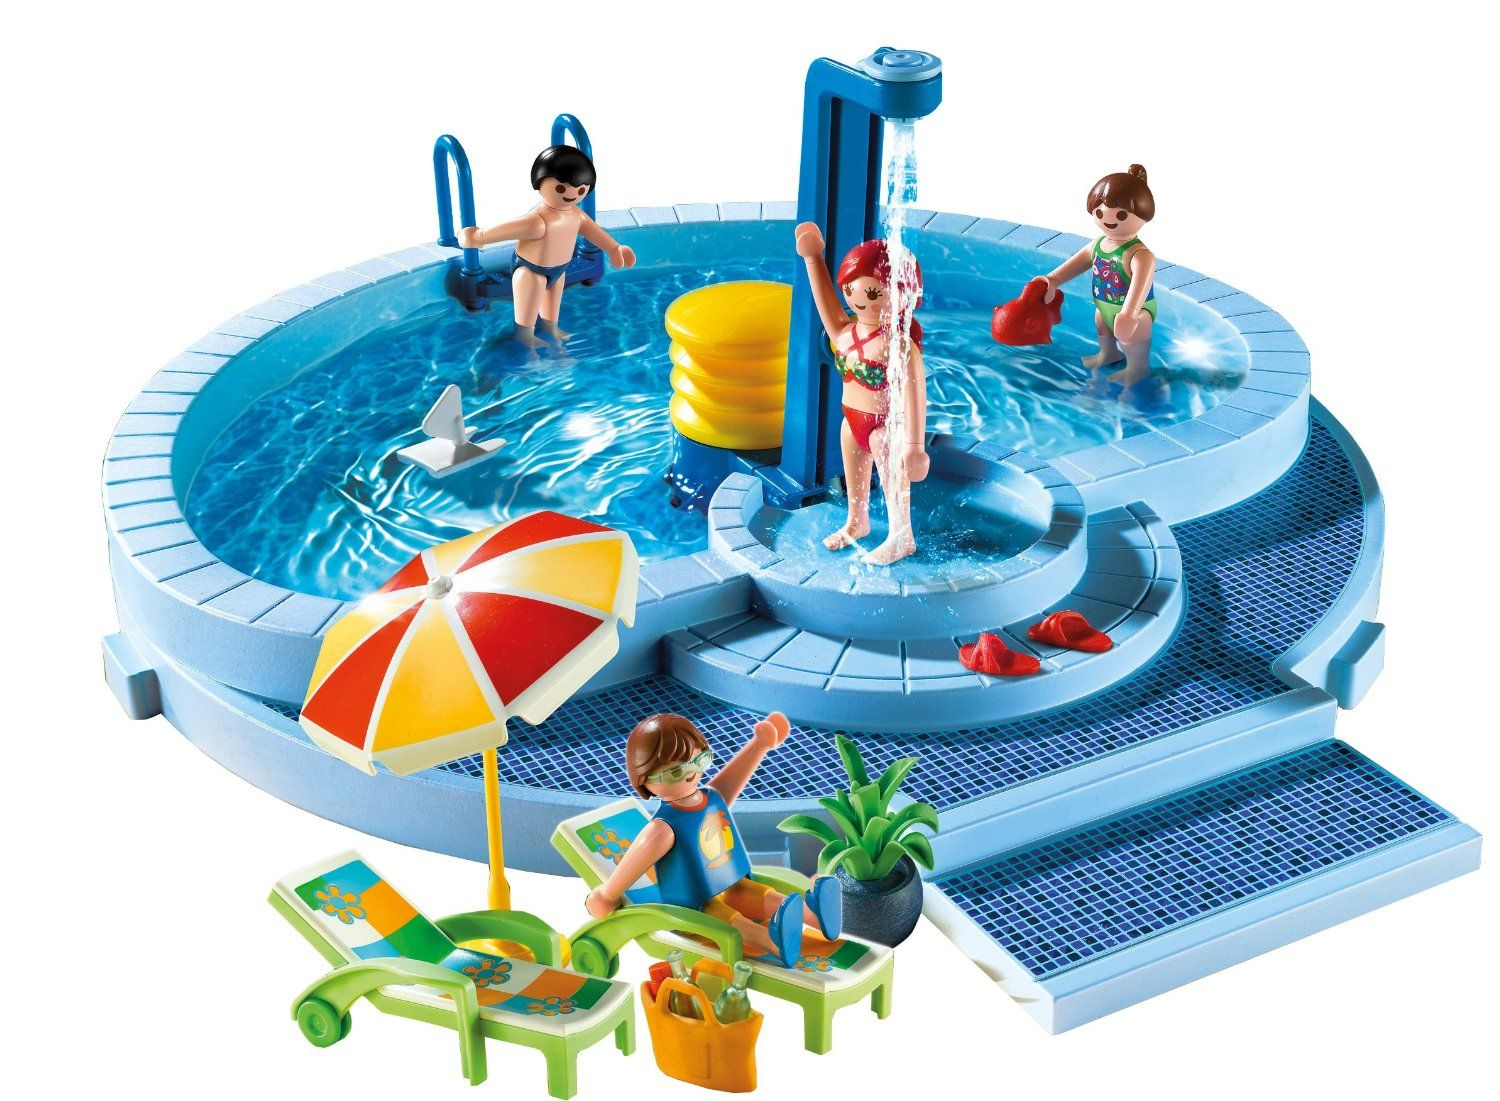 Playmobil pool 5964 playmobil de r ves pinterest for Piscine playmobil prix